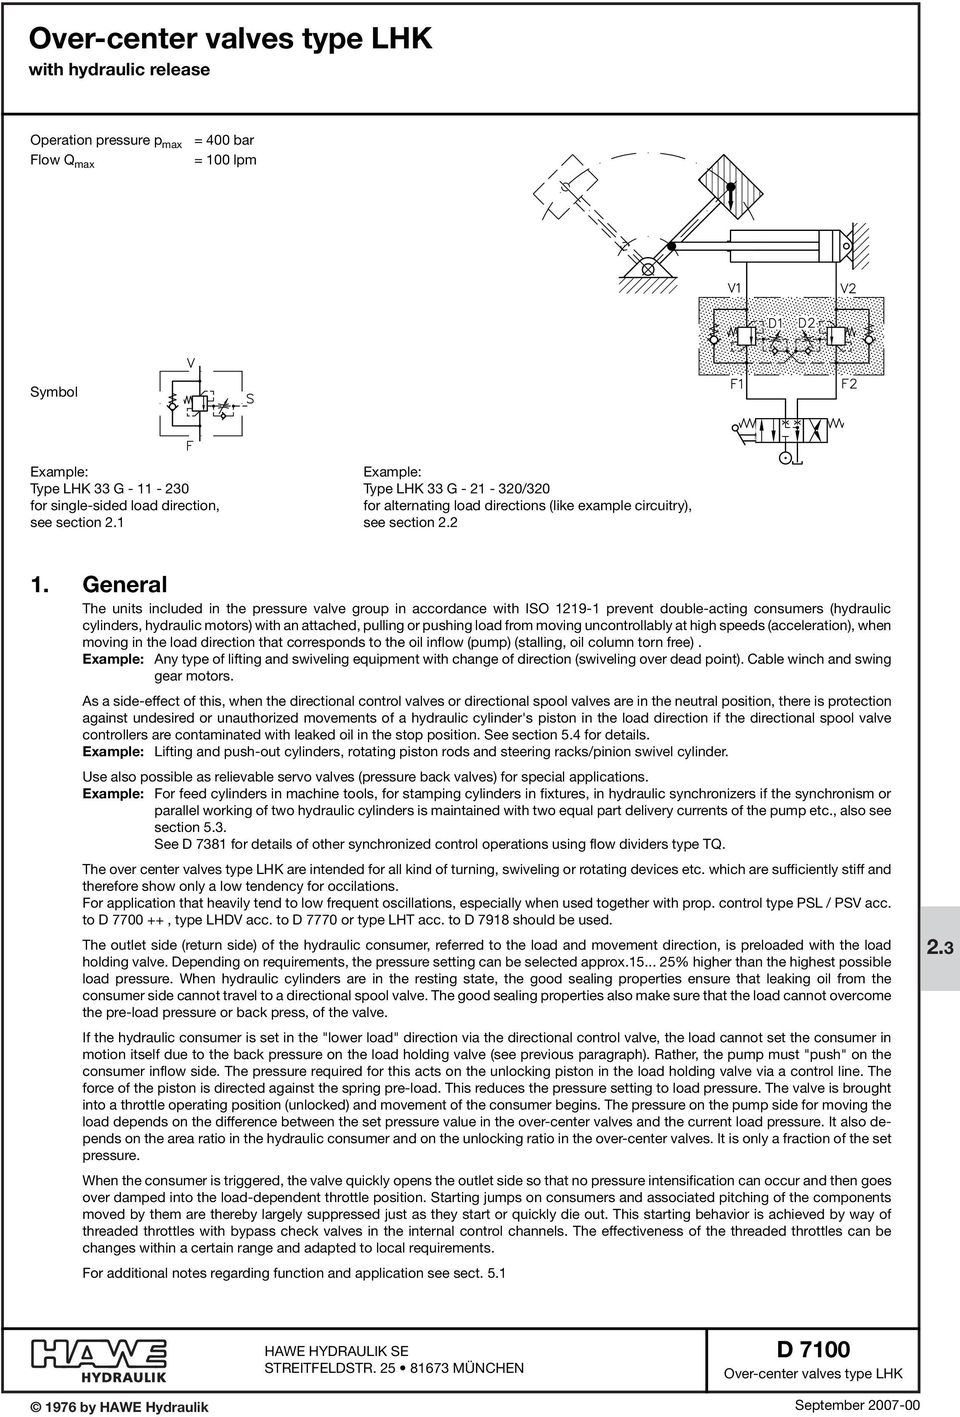 Over-center valves type LHK with hydraulic release - PDF on